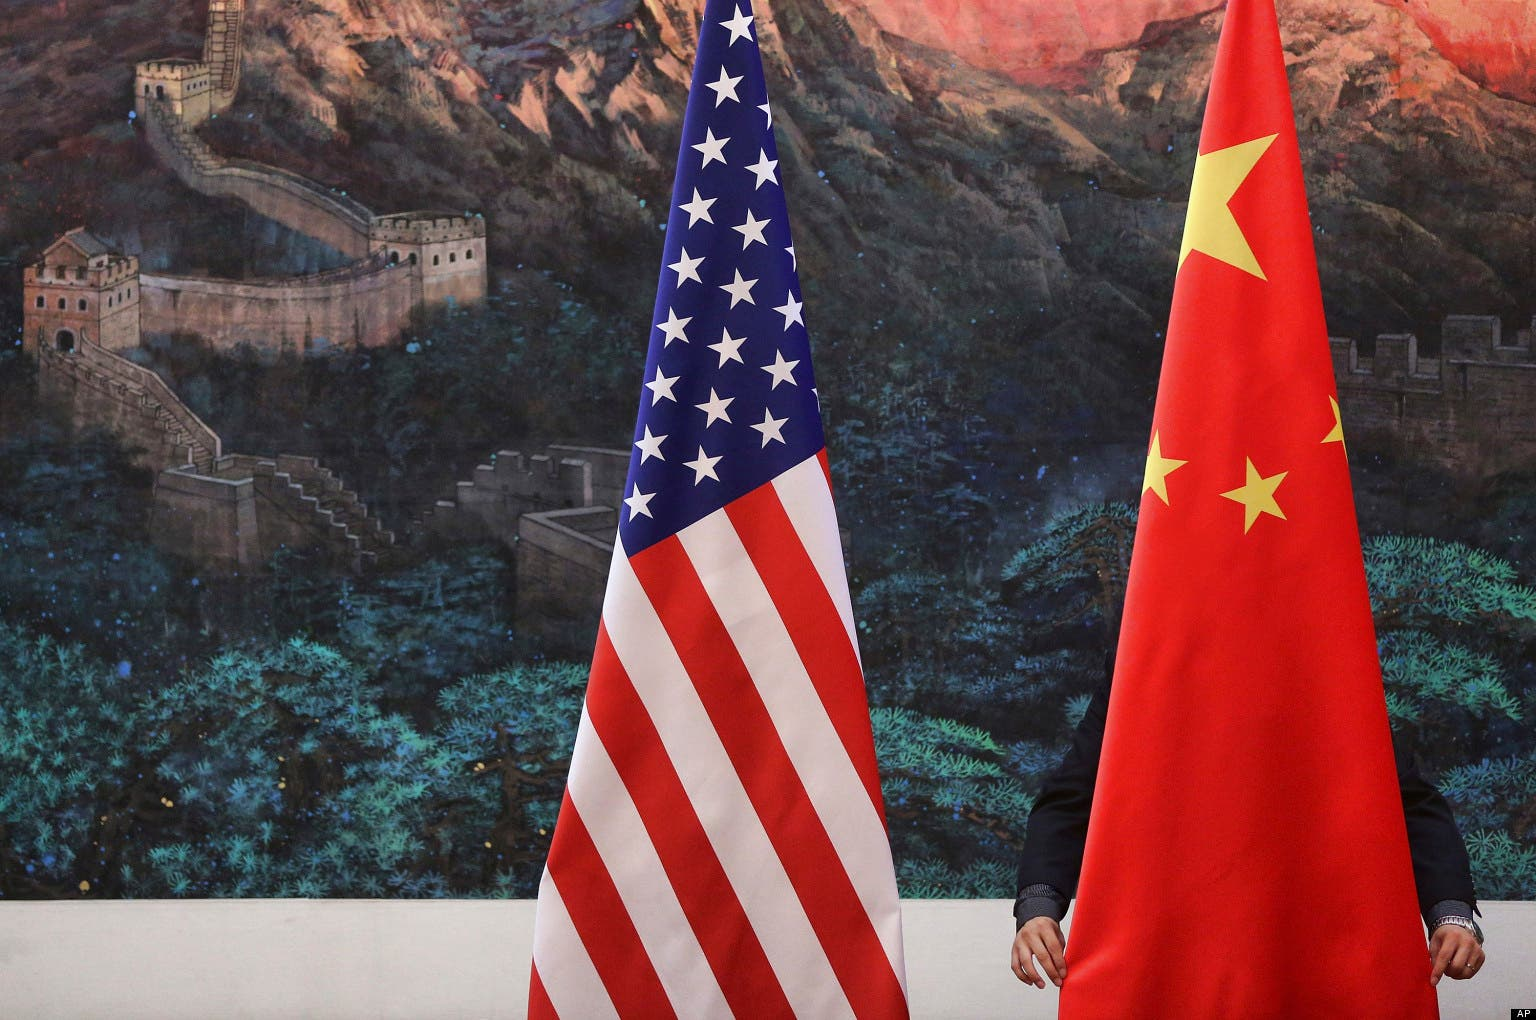 China and US flags. (Reuters)